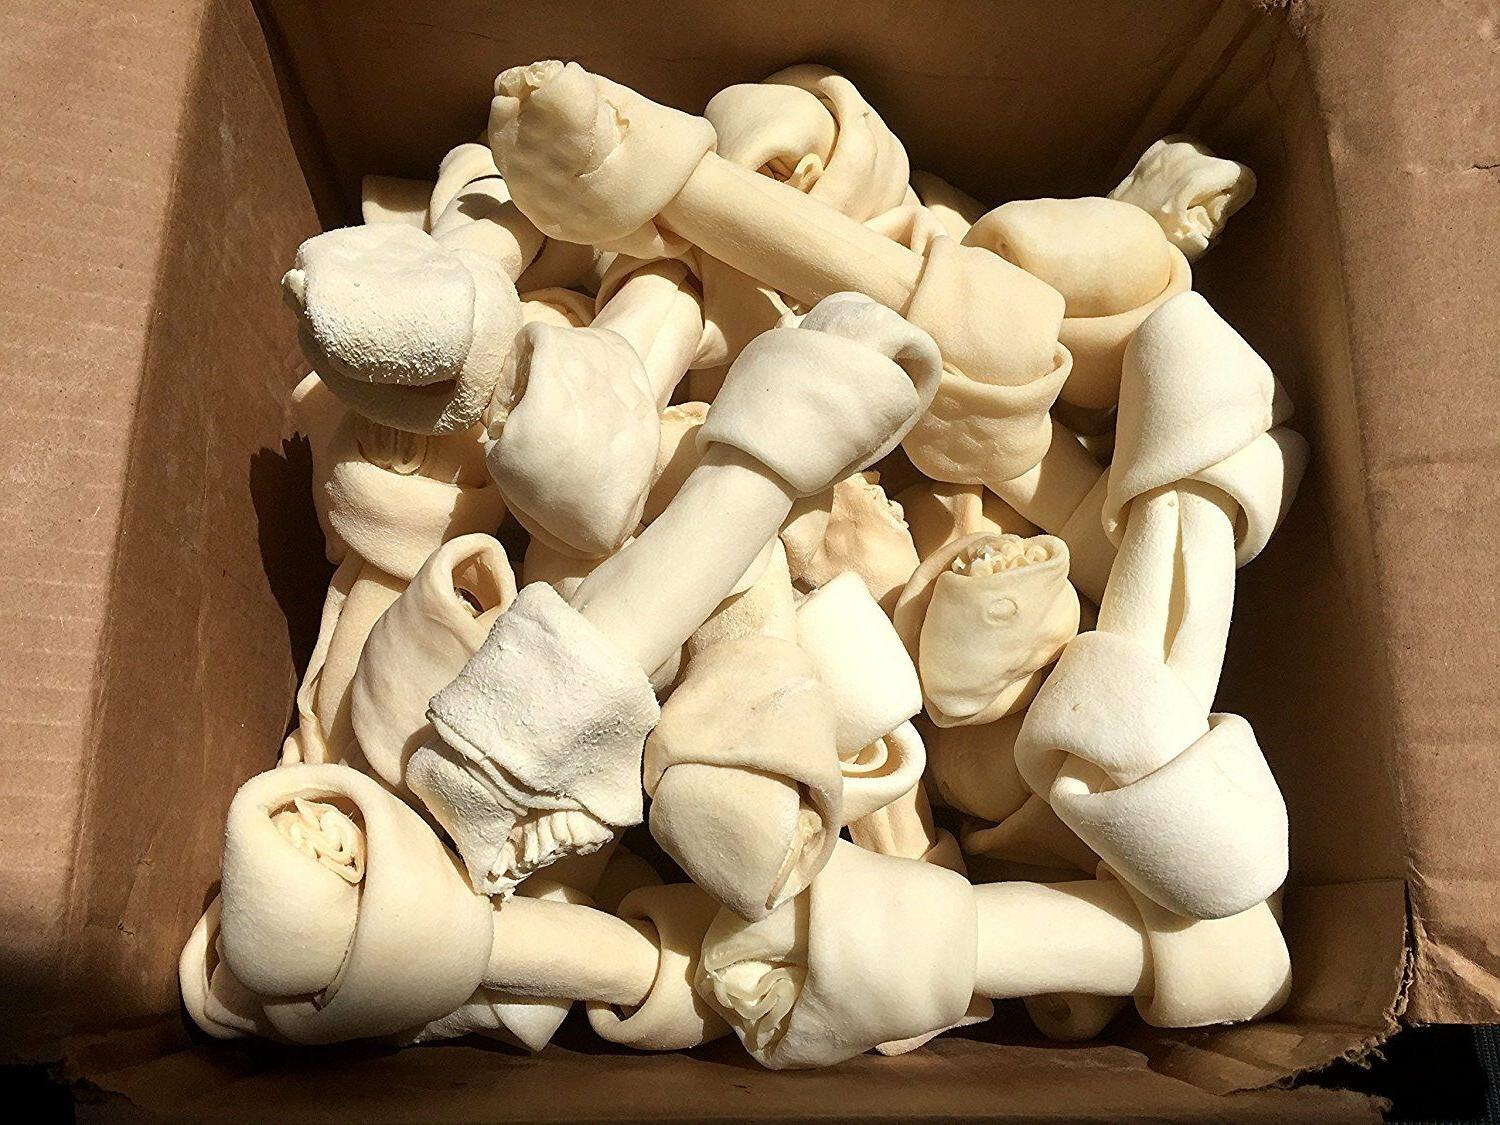 Rawhide 100% Natural hide chew in From 123